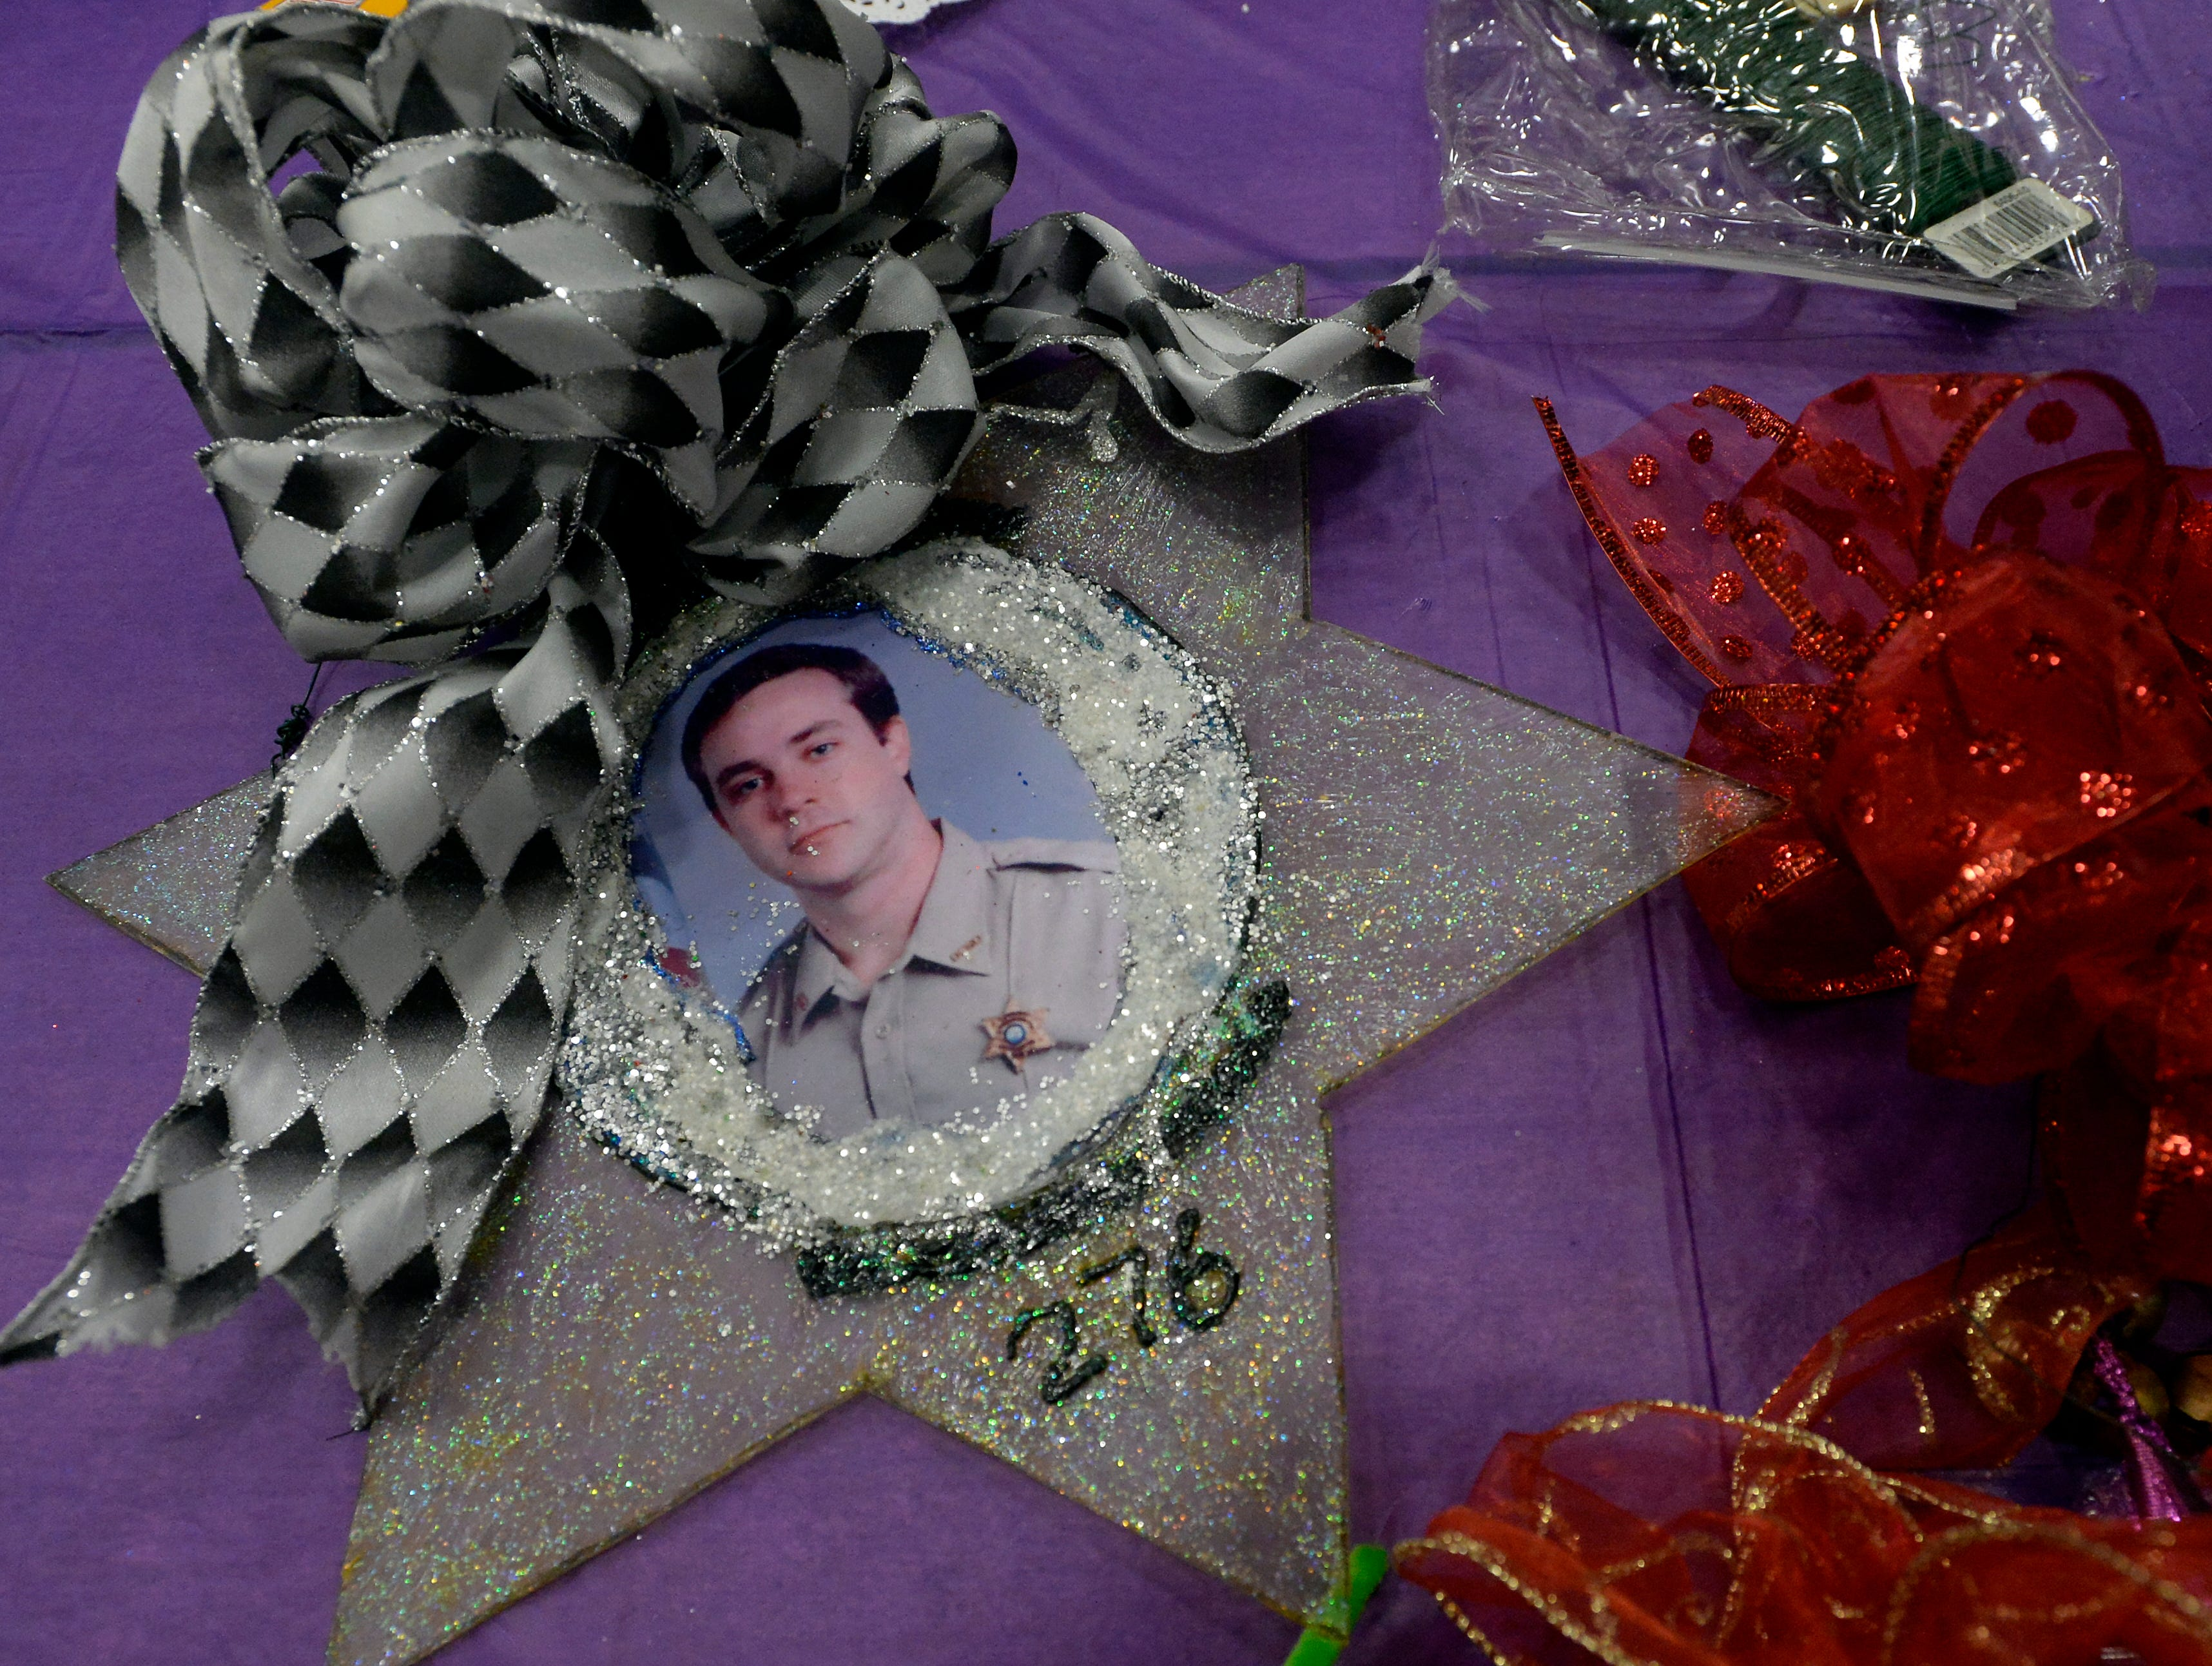 A memorial Christmas ornament of Chris Davis, who was killed in 2005, was made as part of a community outreach program at the Metro Police Department's North Precinct on Tuesday, Dec. 11, 2018, in Nashville, Tenn.